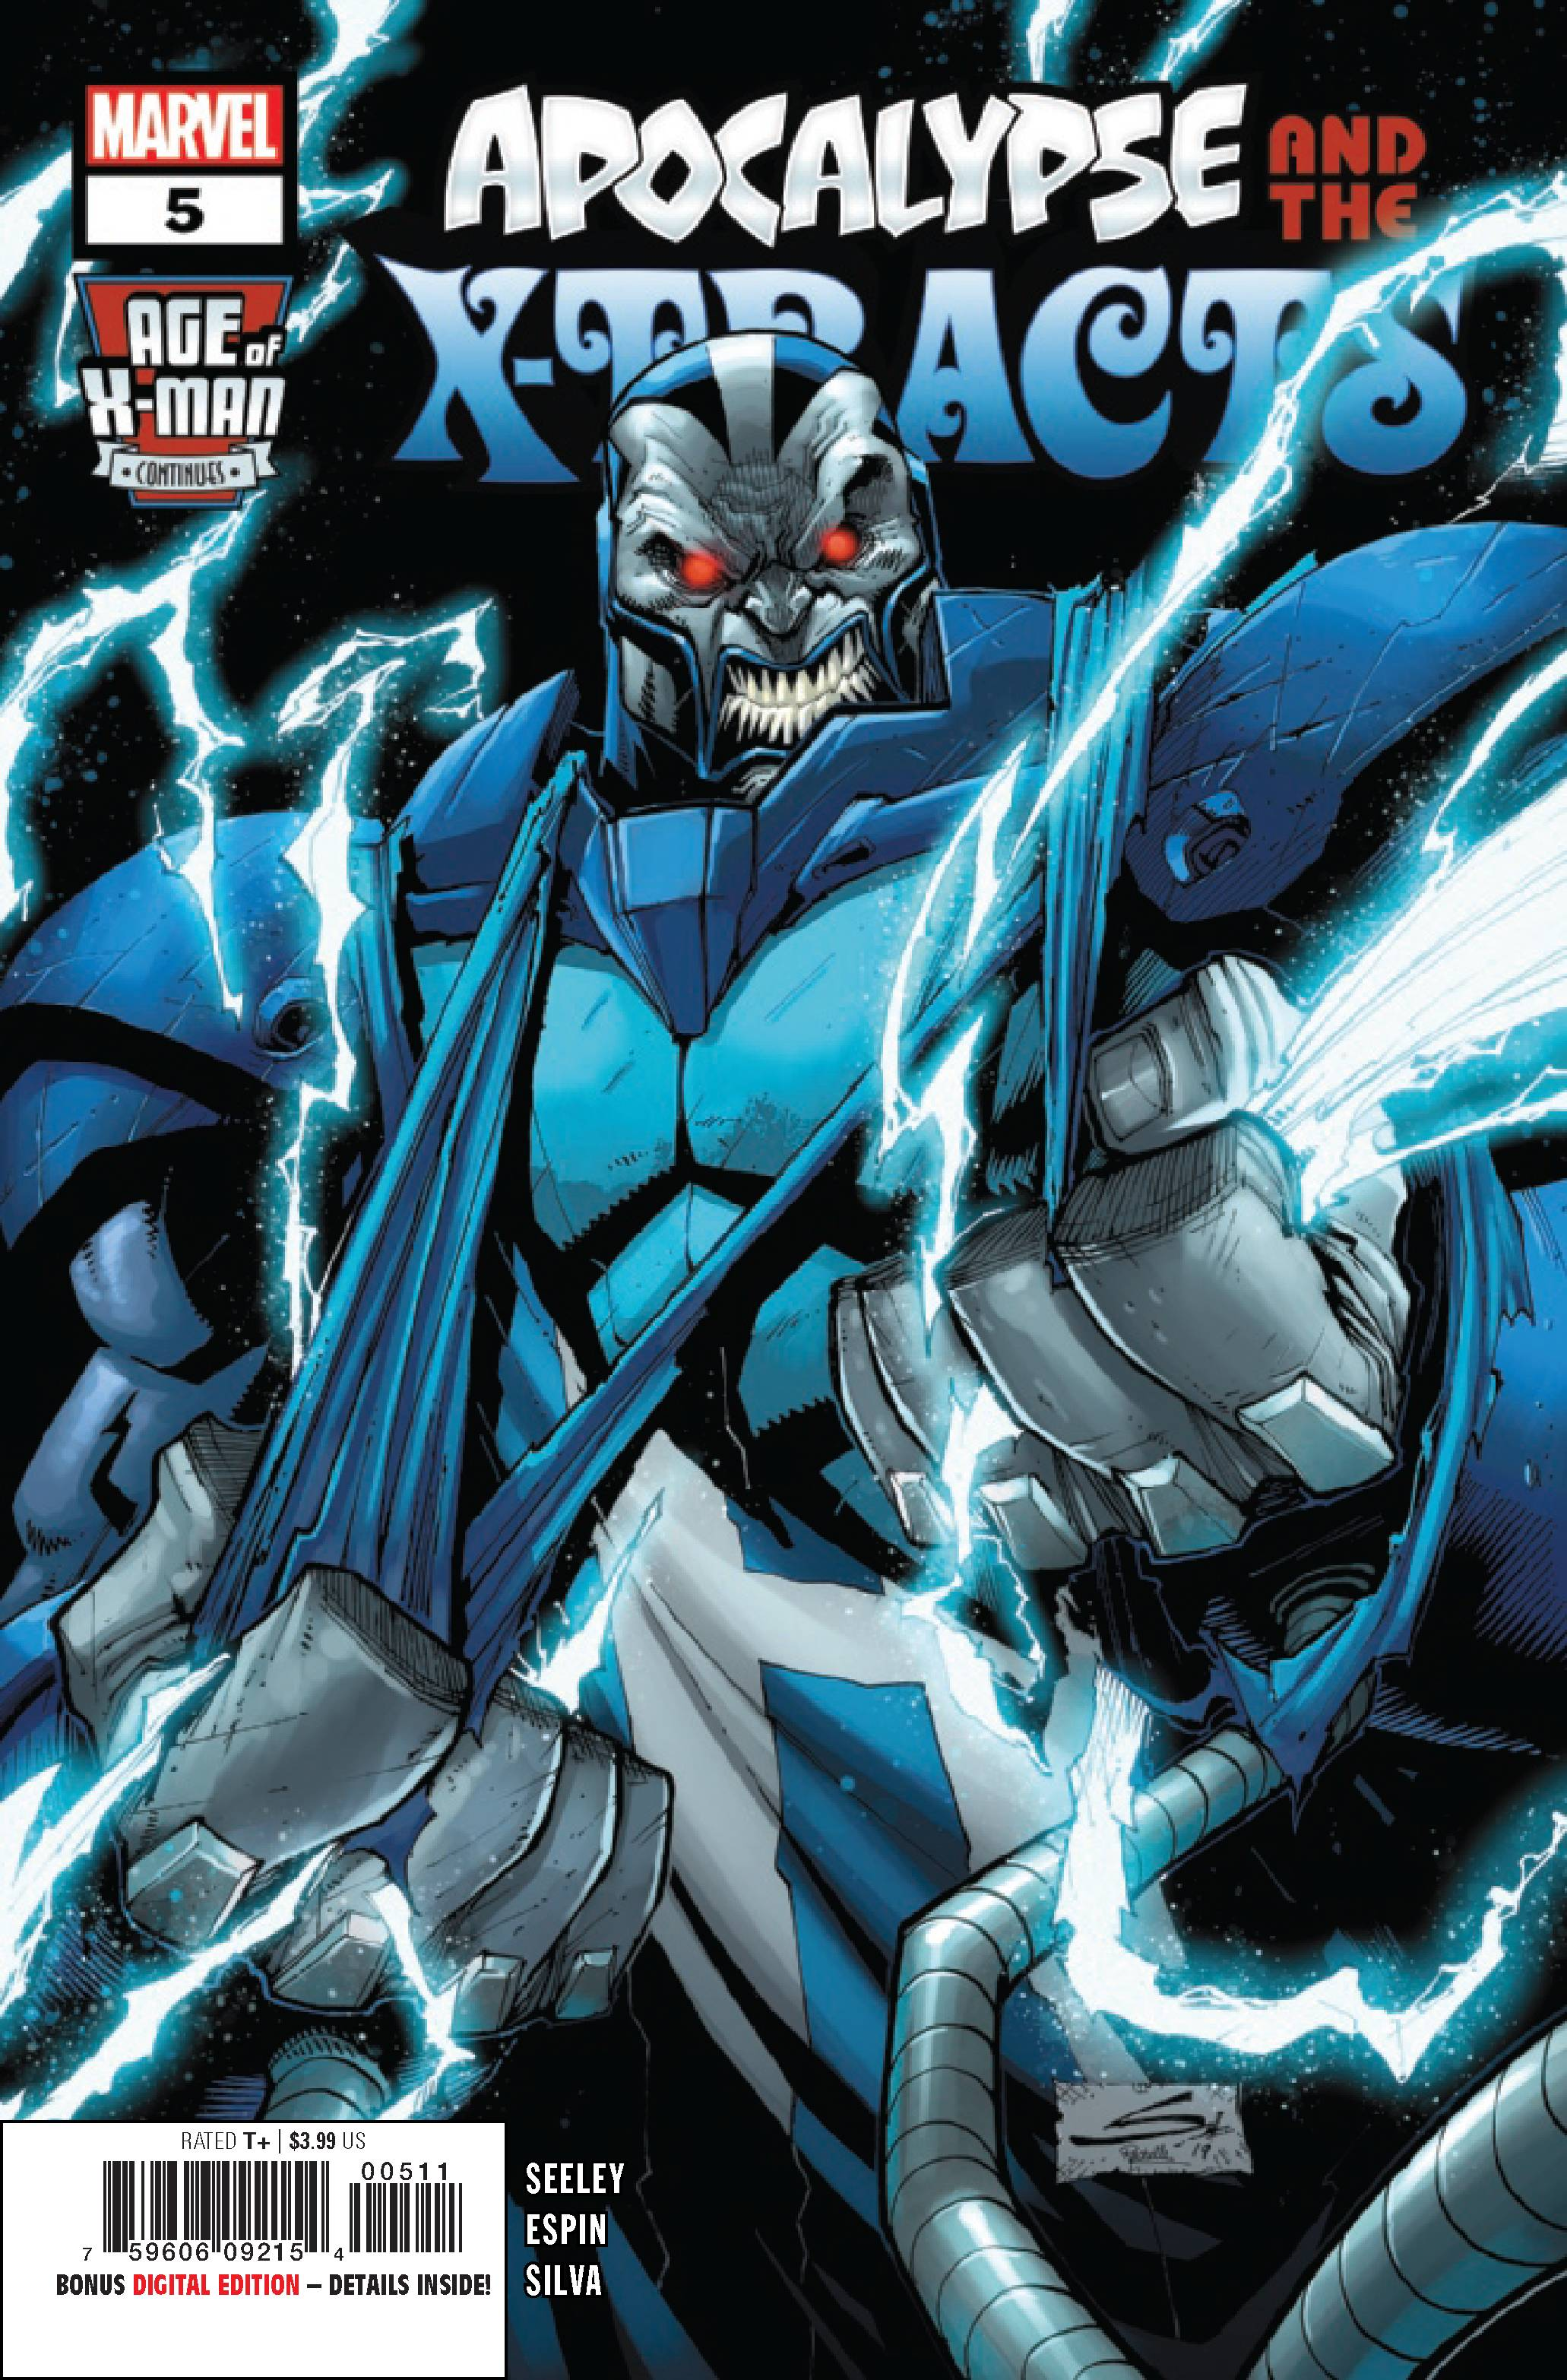 AGE OF X-MAN APOCALYPSE AND X-TRACTS 5 of 5.jpg